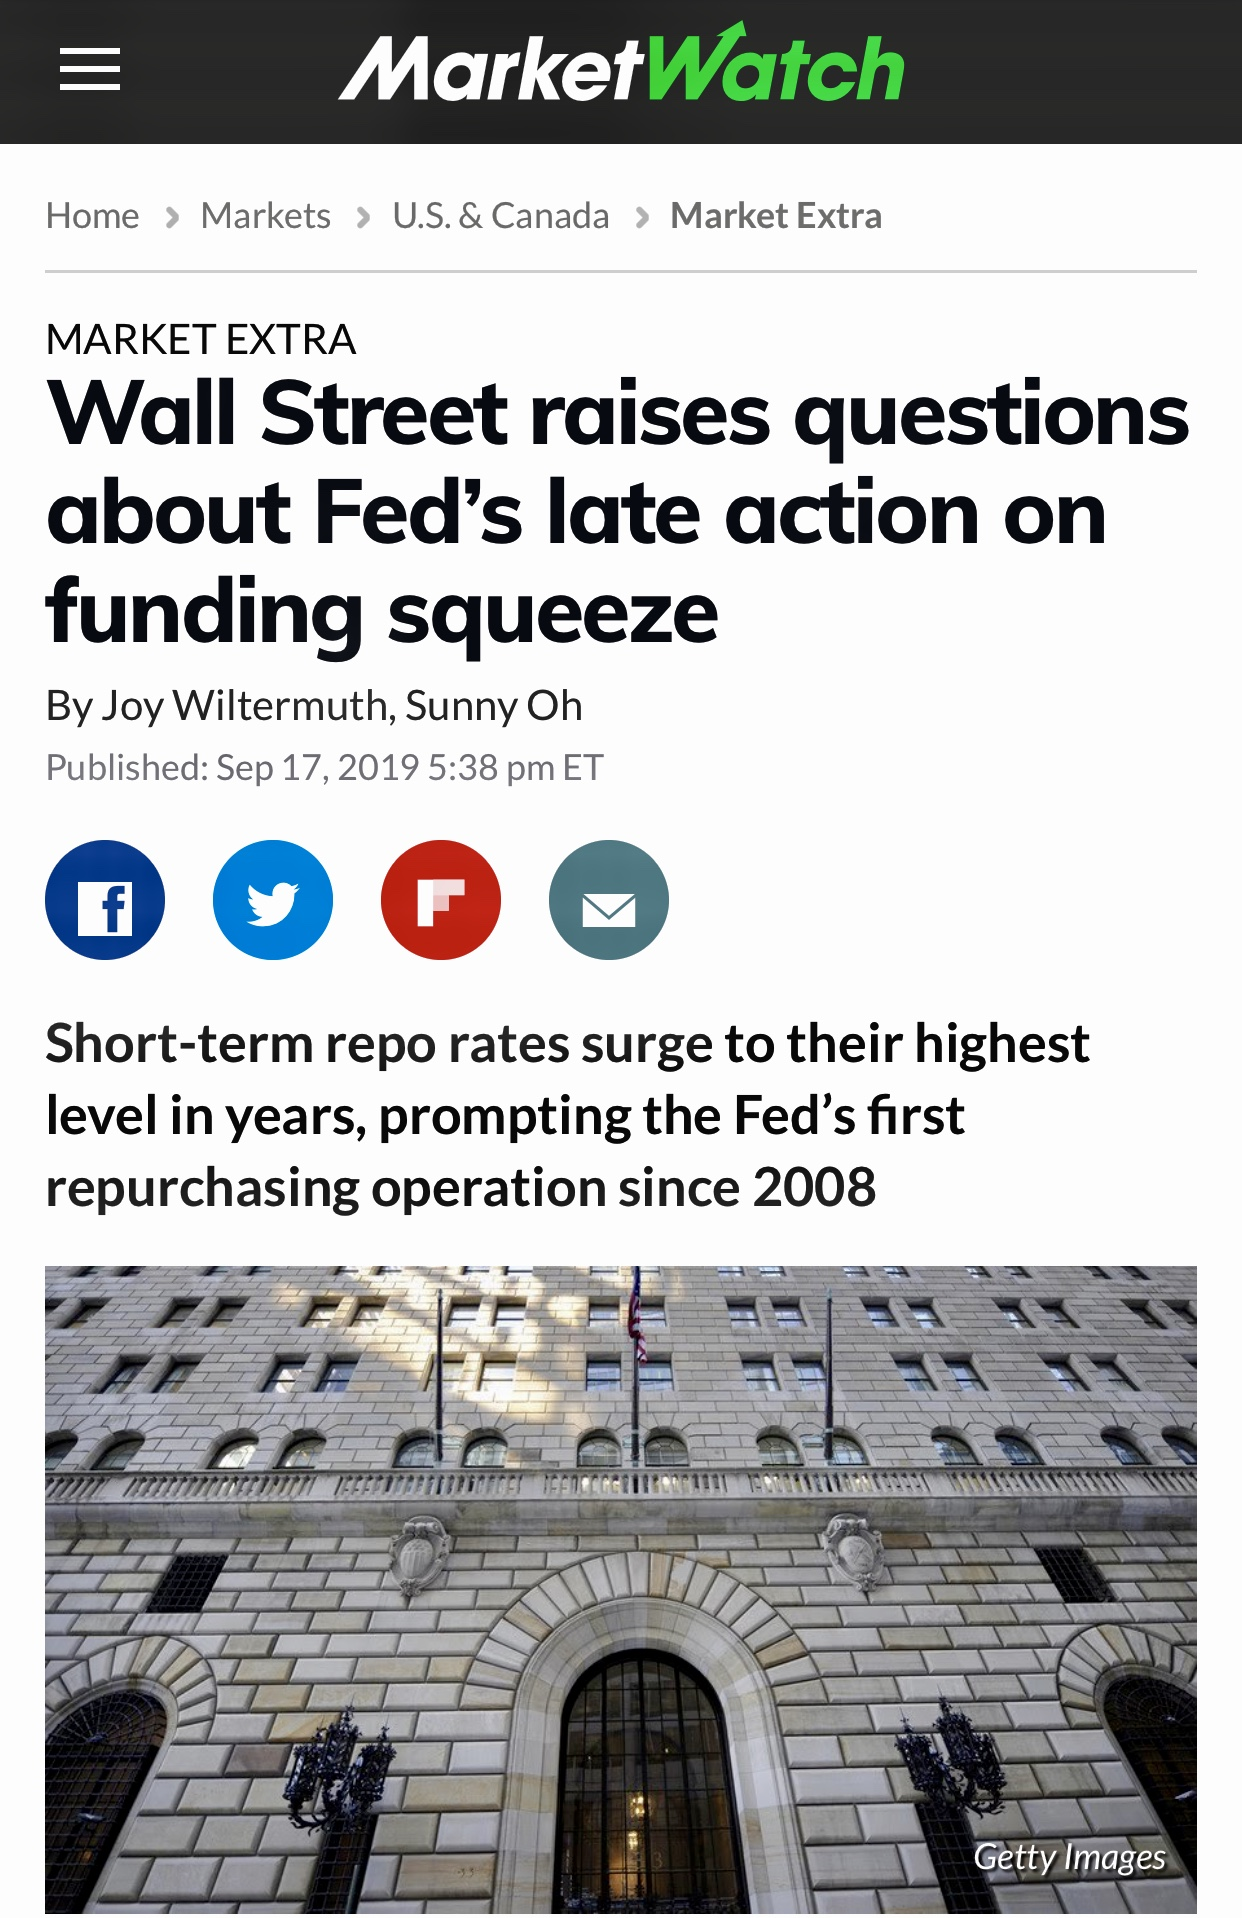 Wall Street raises questions about Fed's late action on funding squeeze – MarketWatch